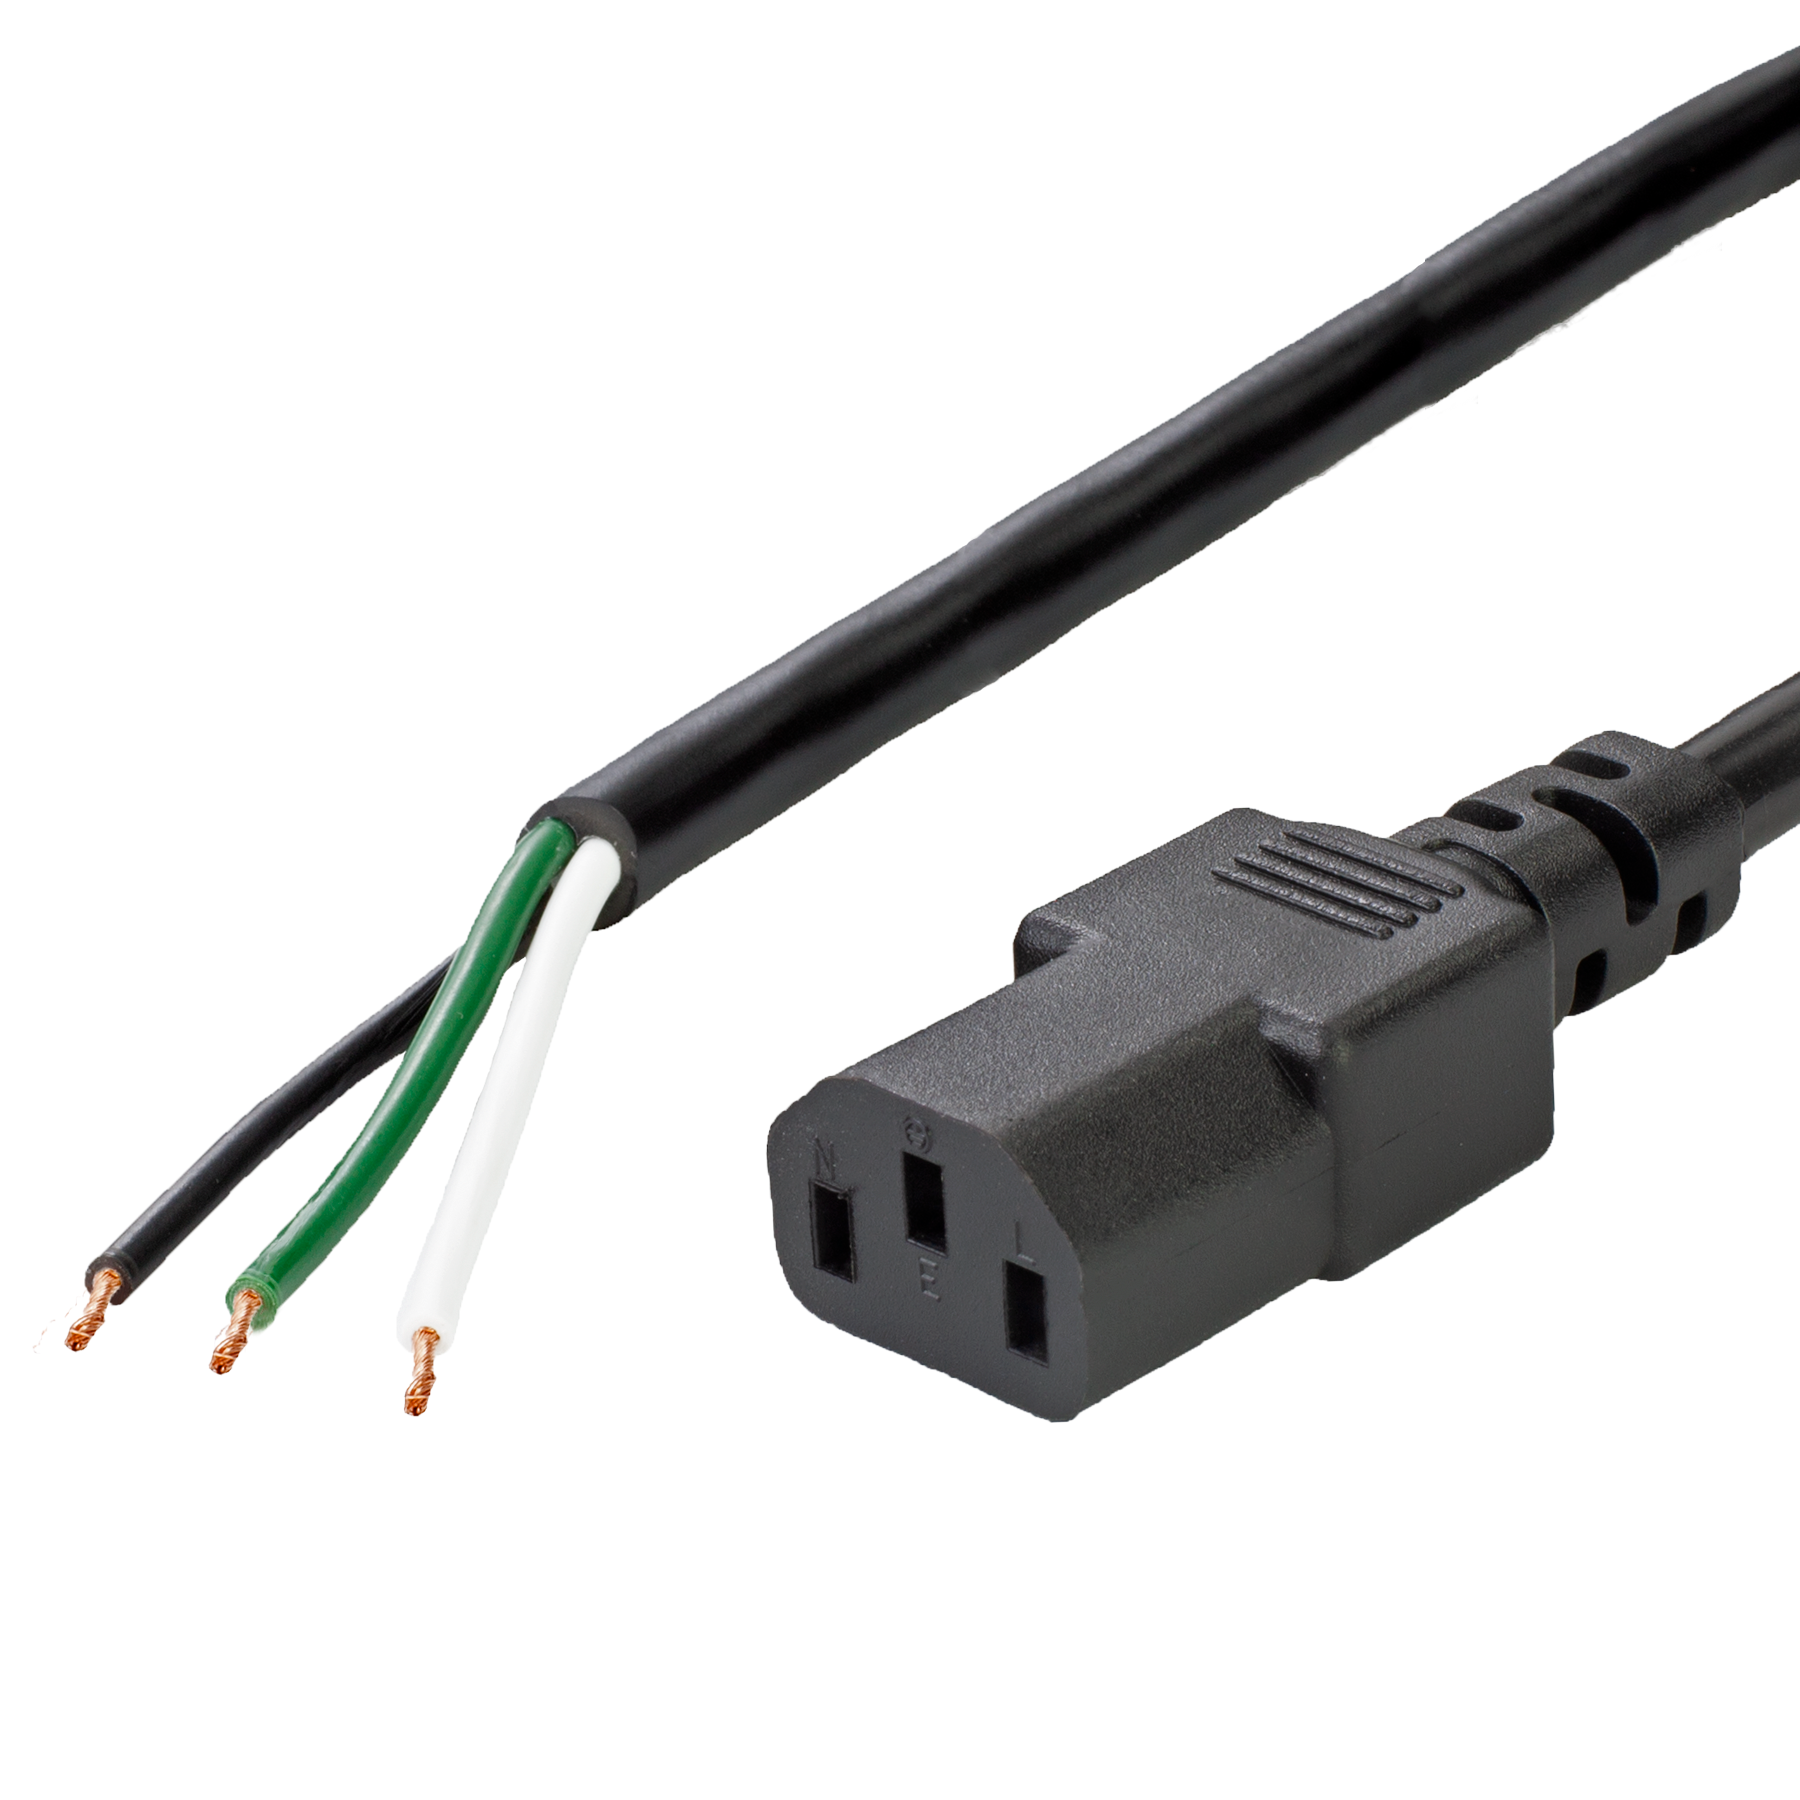 Black 15A OPEN to IEC 60320 C13 Power Cords